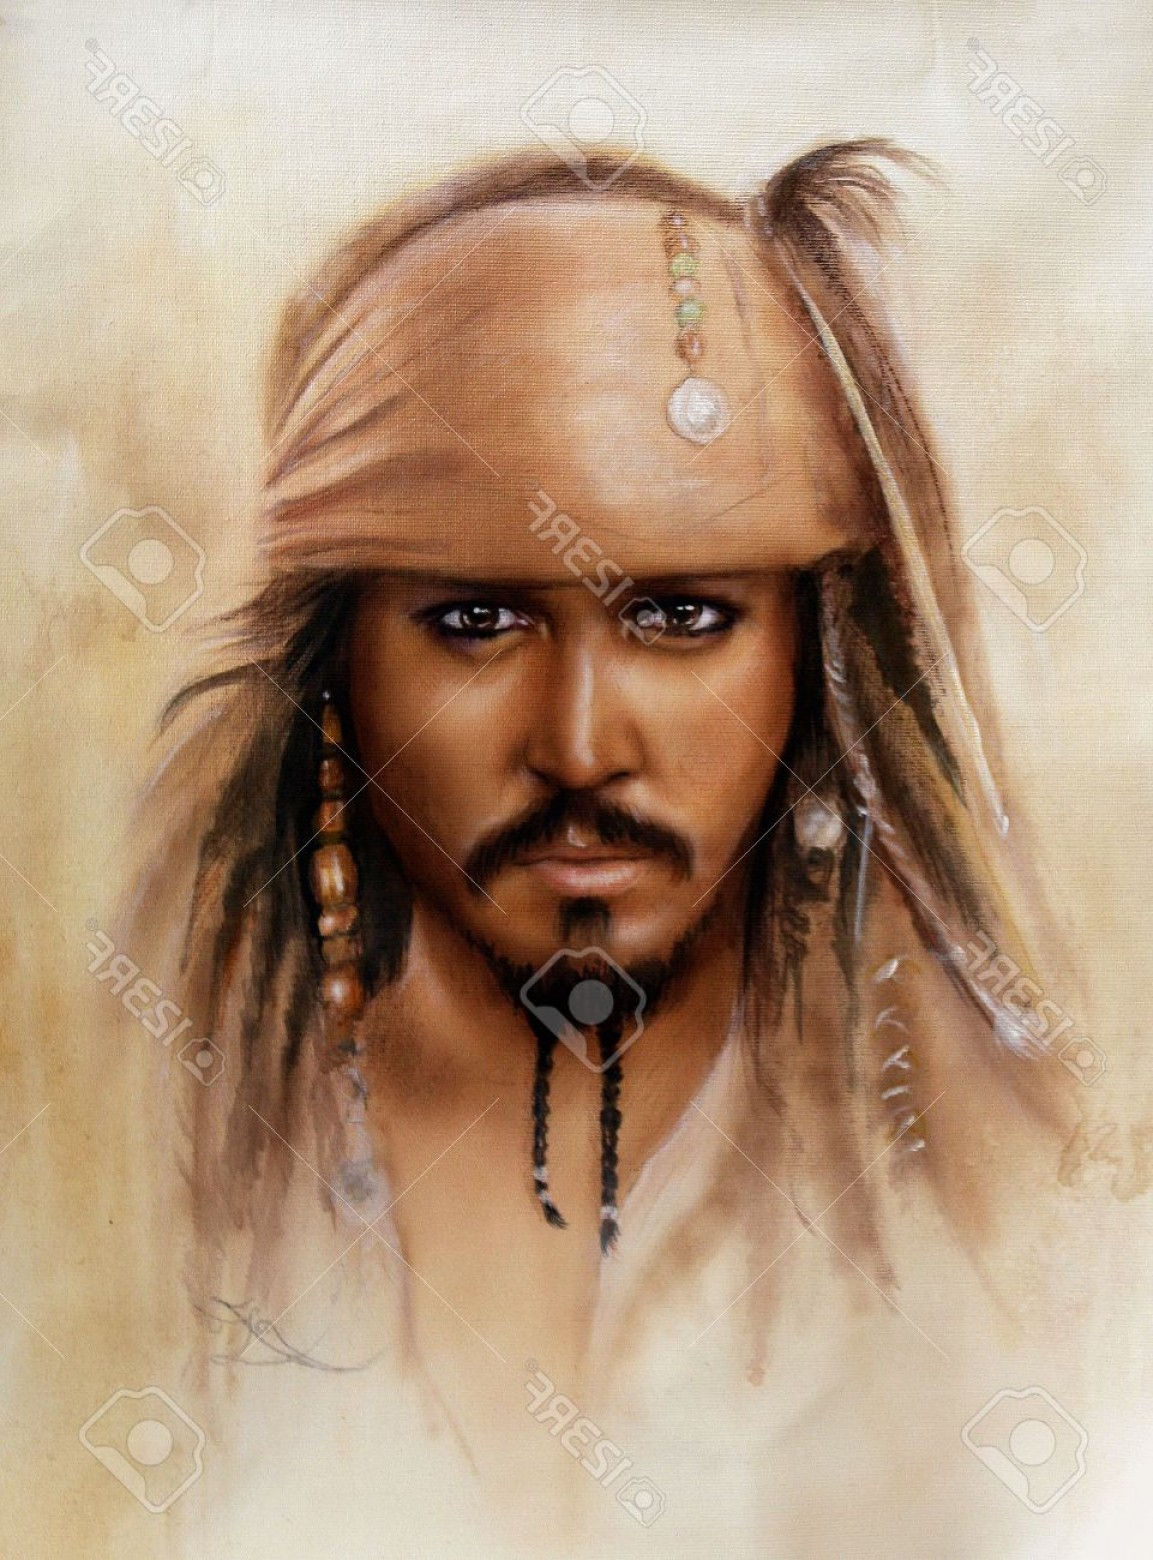 Jack Sparrow Vector Logo: Photoa Beautiful Close Up Portrait Of Jack Sparrow In Airbrush